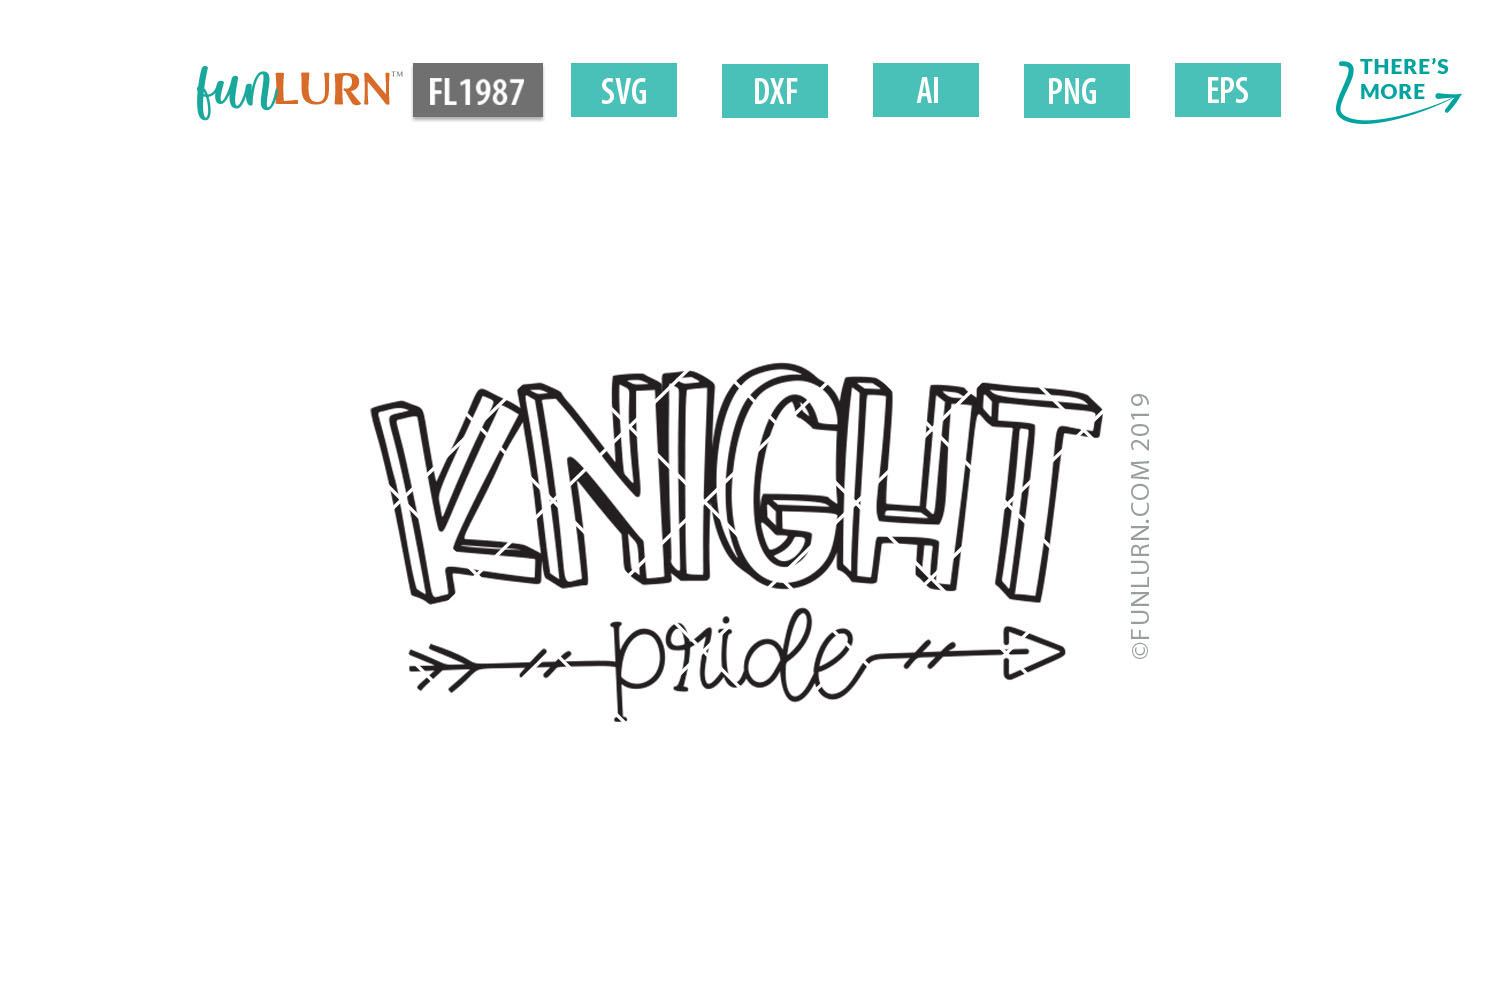 Knight Pride Team SVG Cut File example image 2